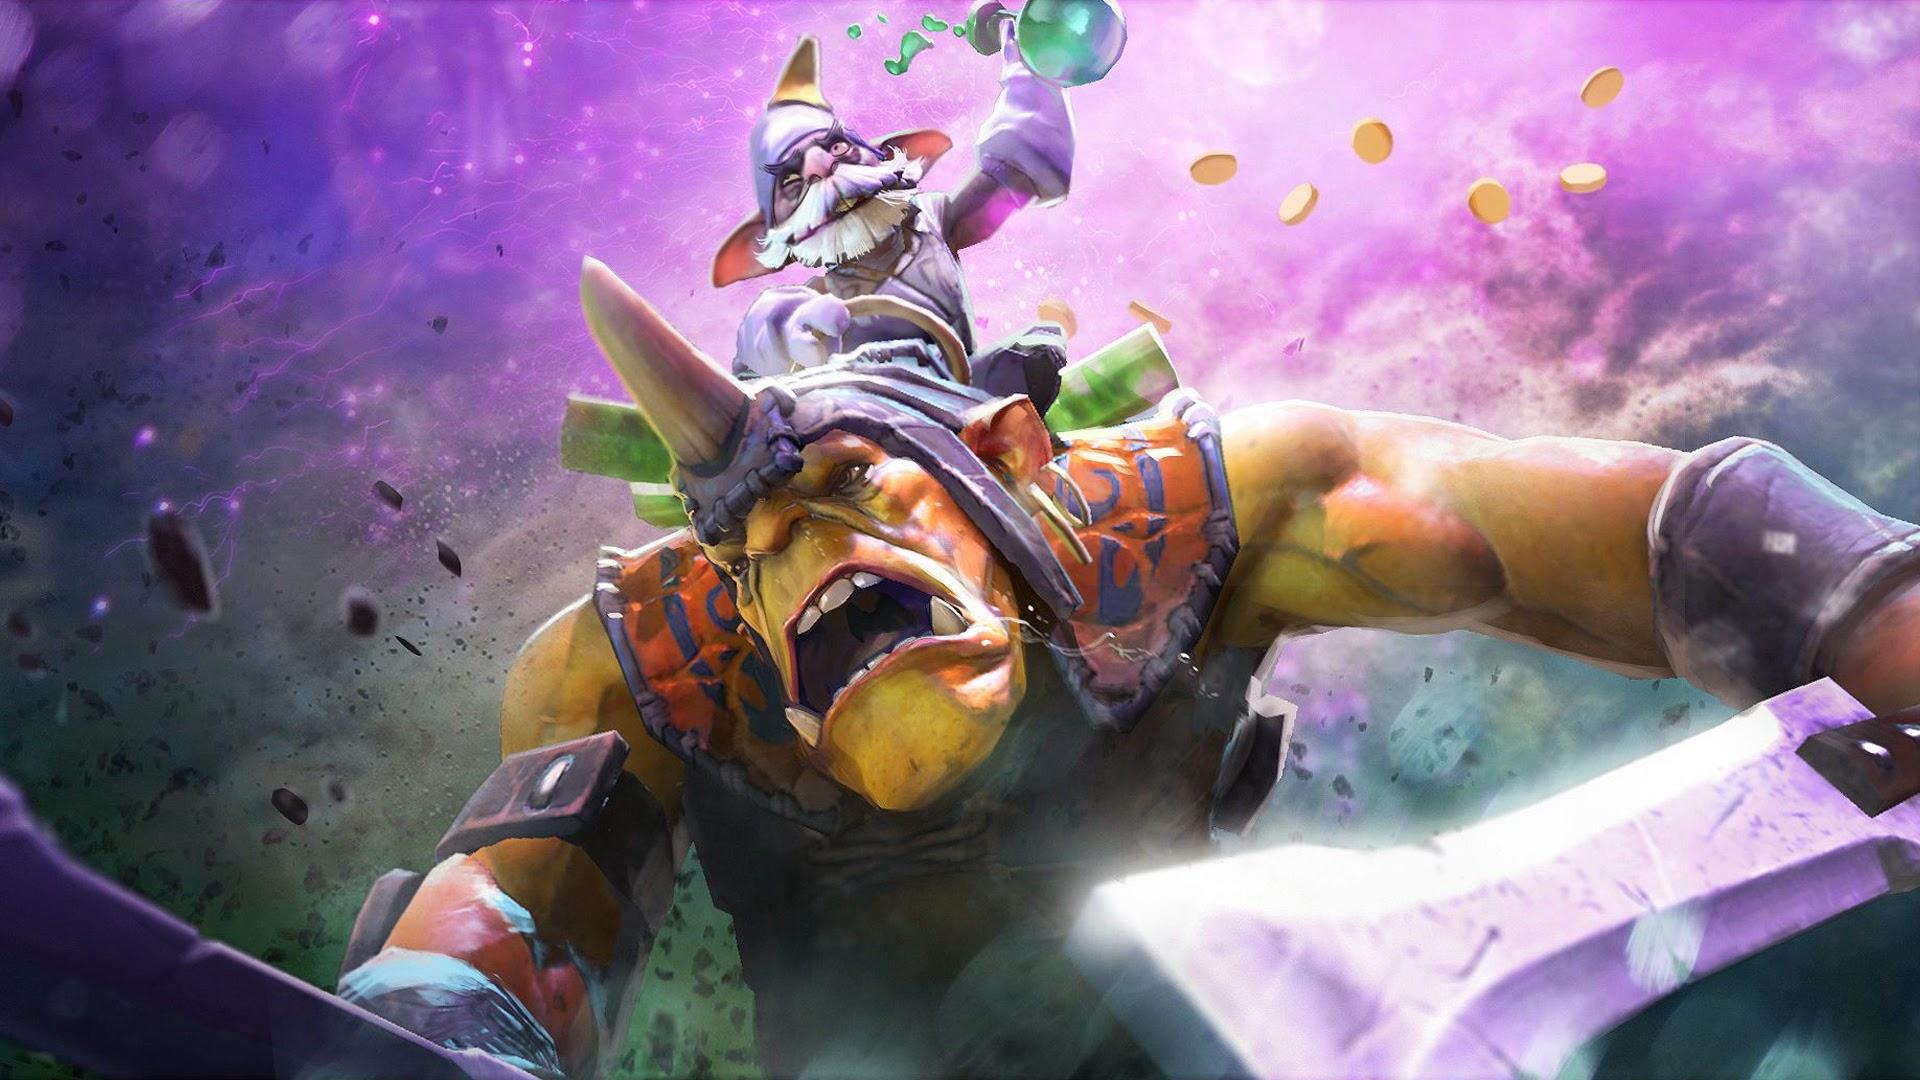 Dota 2 Wallpaper HD 4K Pictures Images Wallpapers for ...